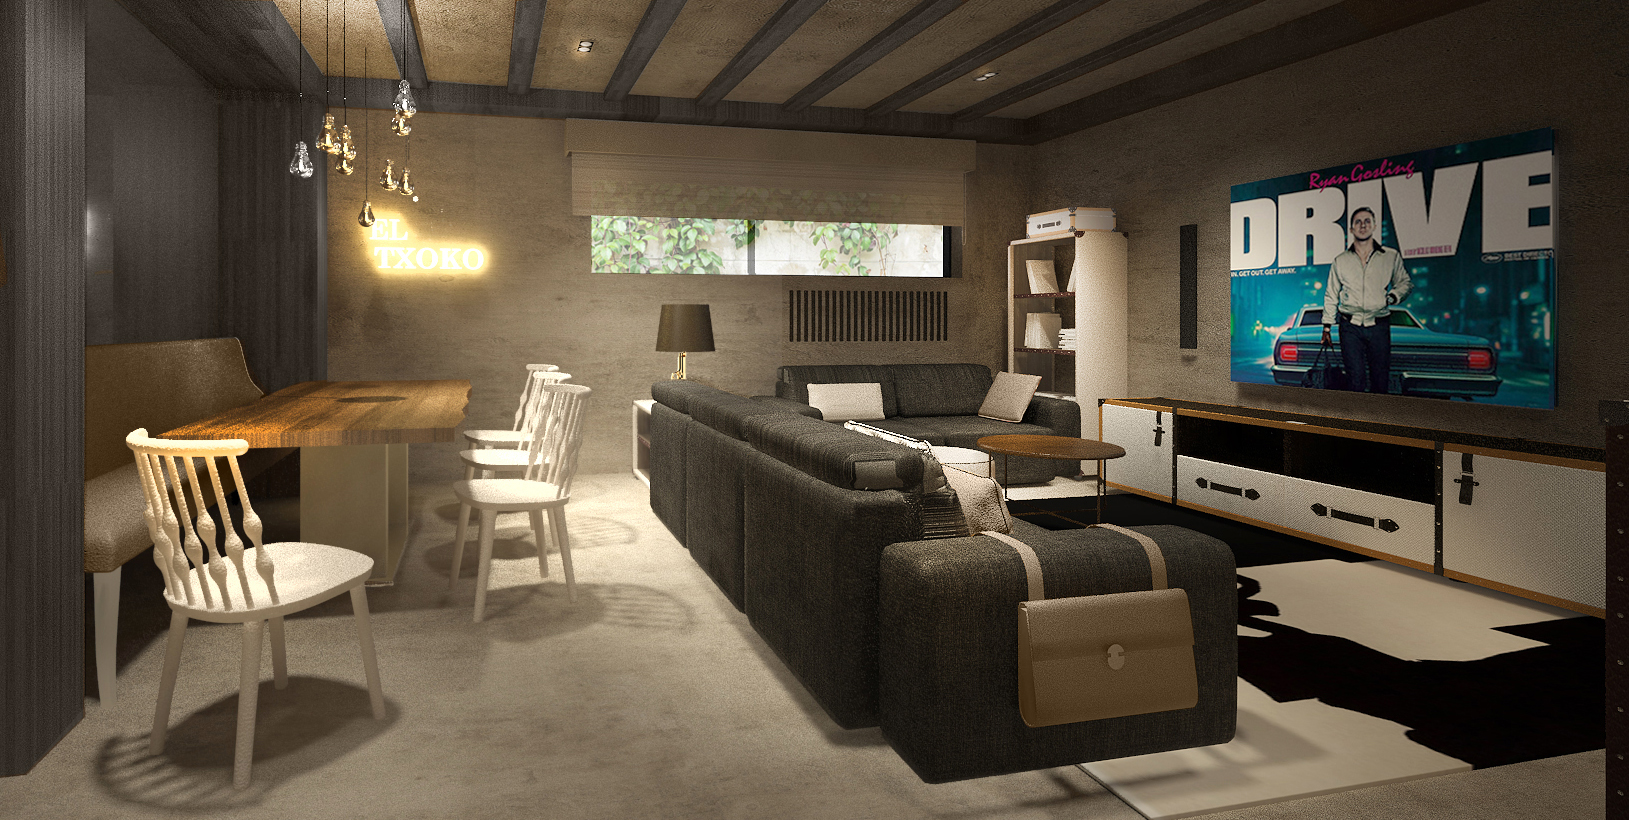 ... Home Cinema Sofas Cinema Seating, Recliner Seating, Theatre Seating,  Luxury Cinema Room, Luxury Theatre Room